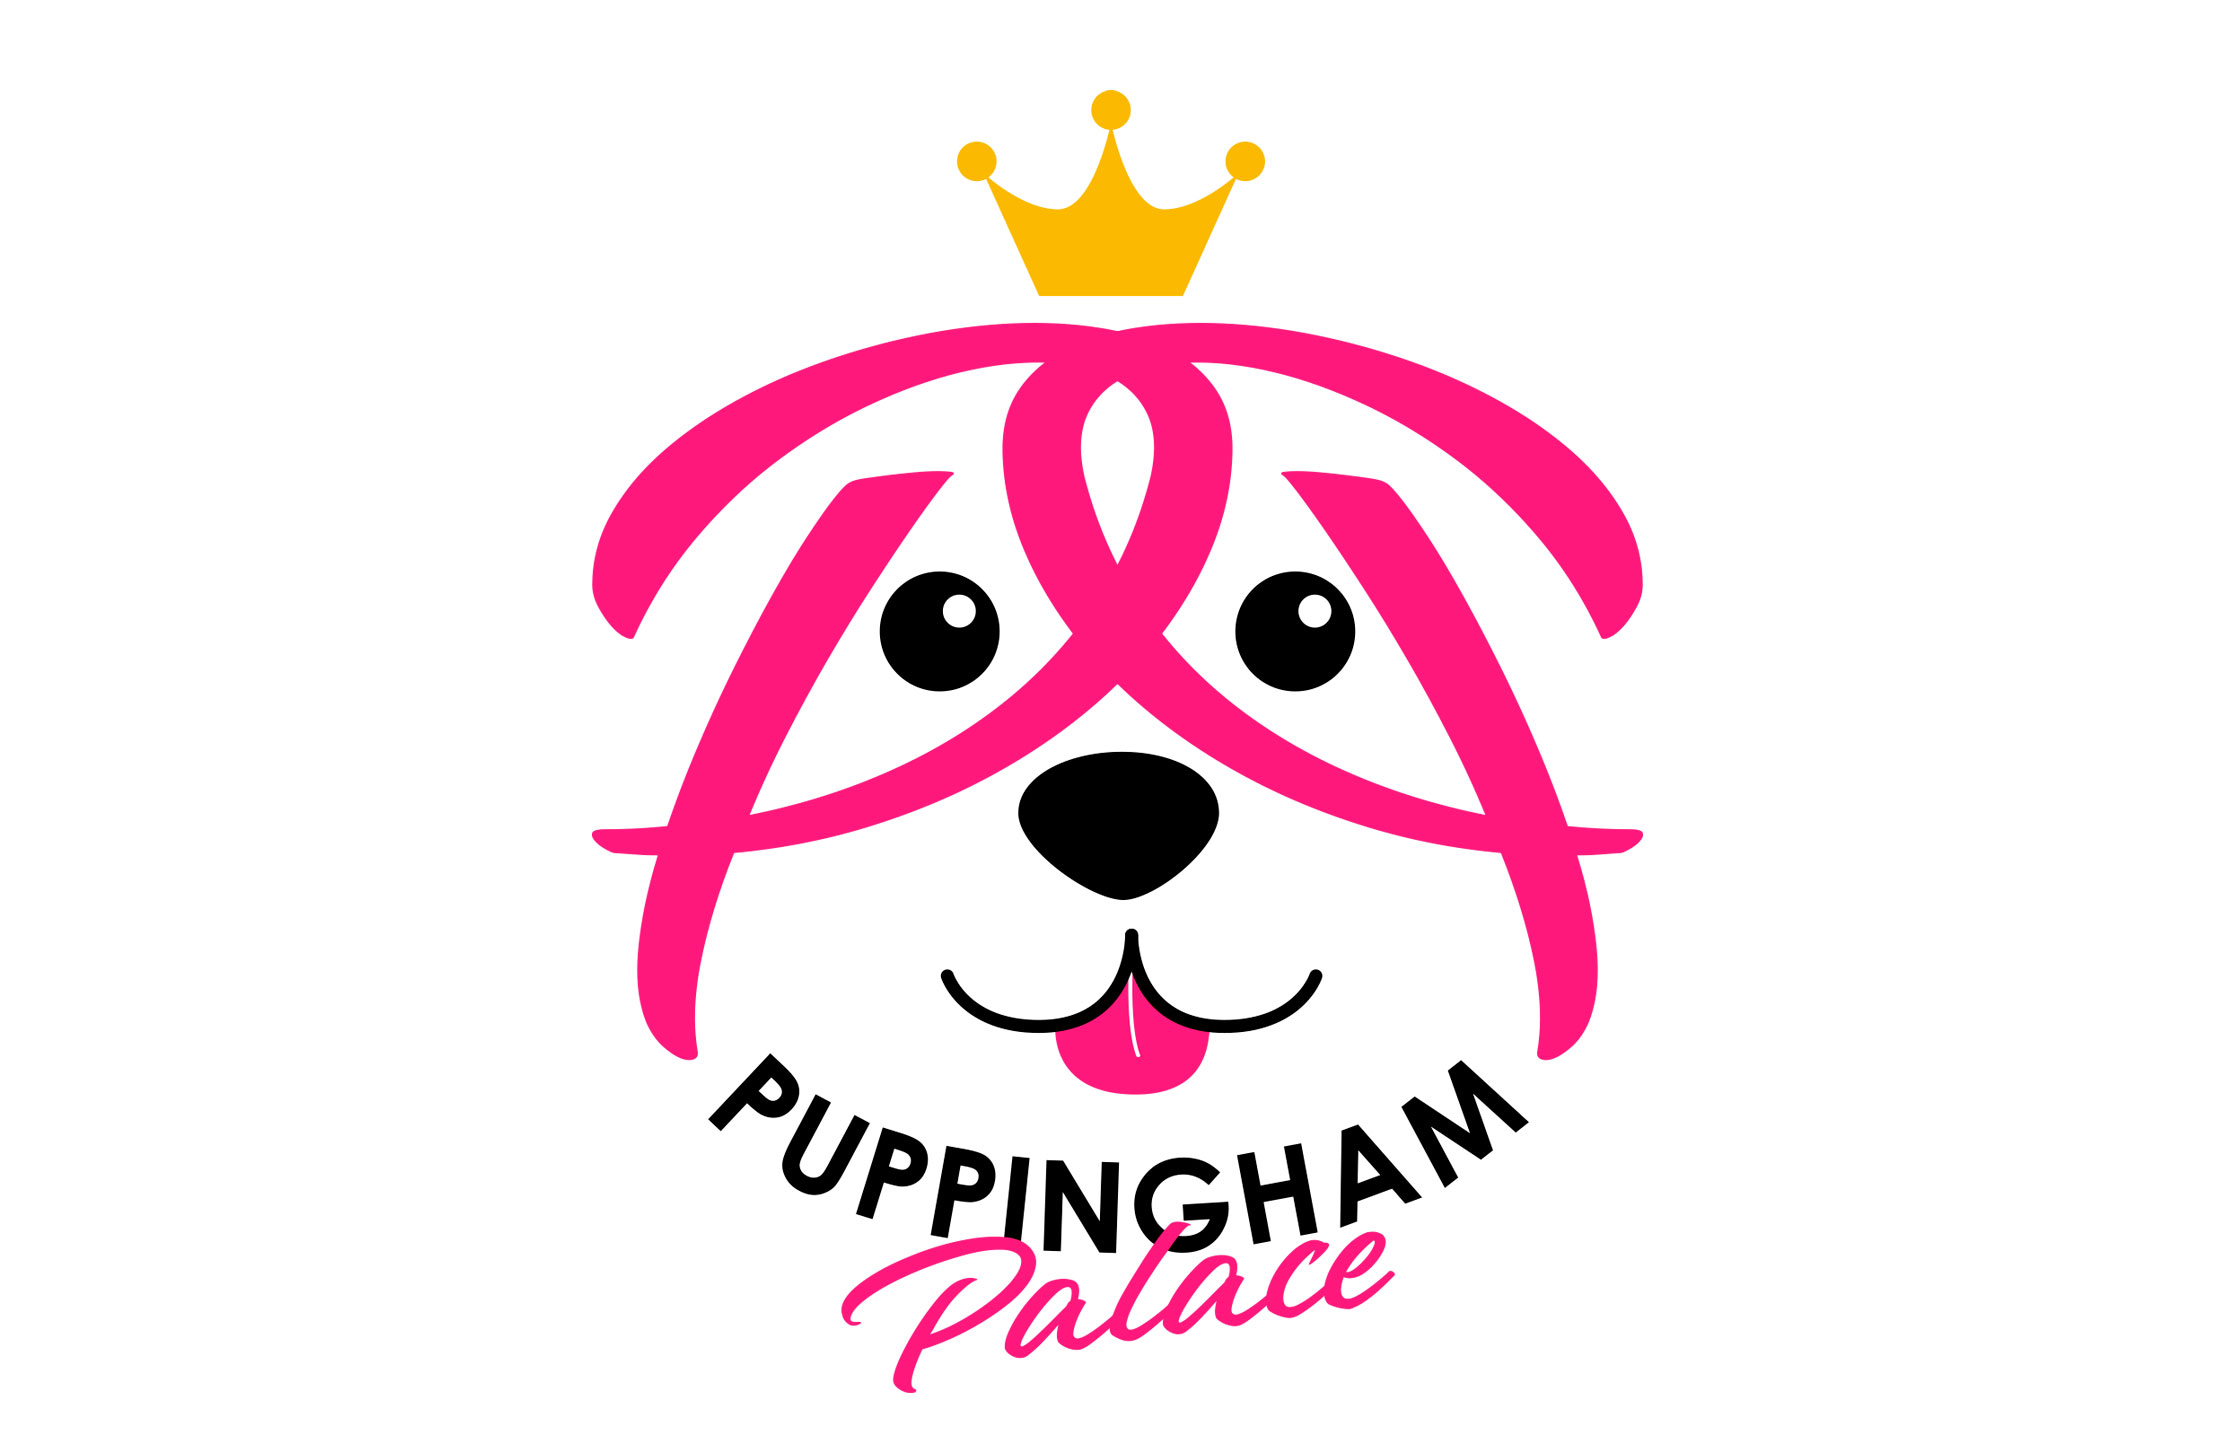 Puppingham Palace dog care logo